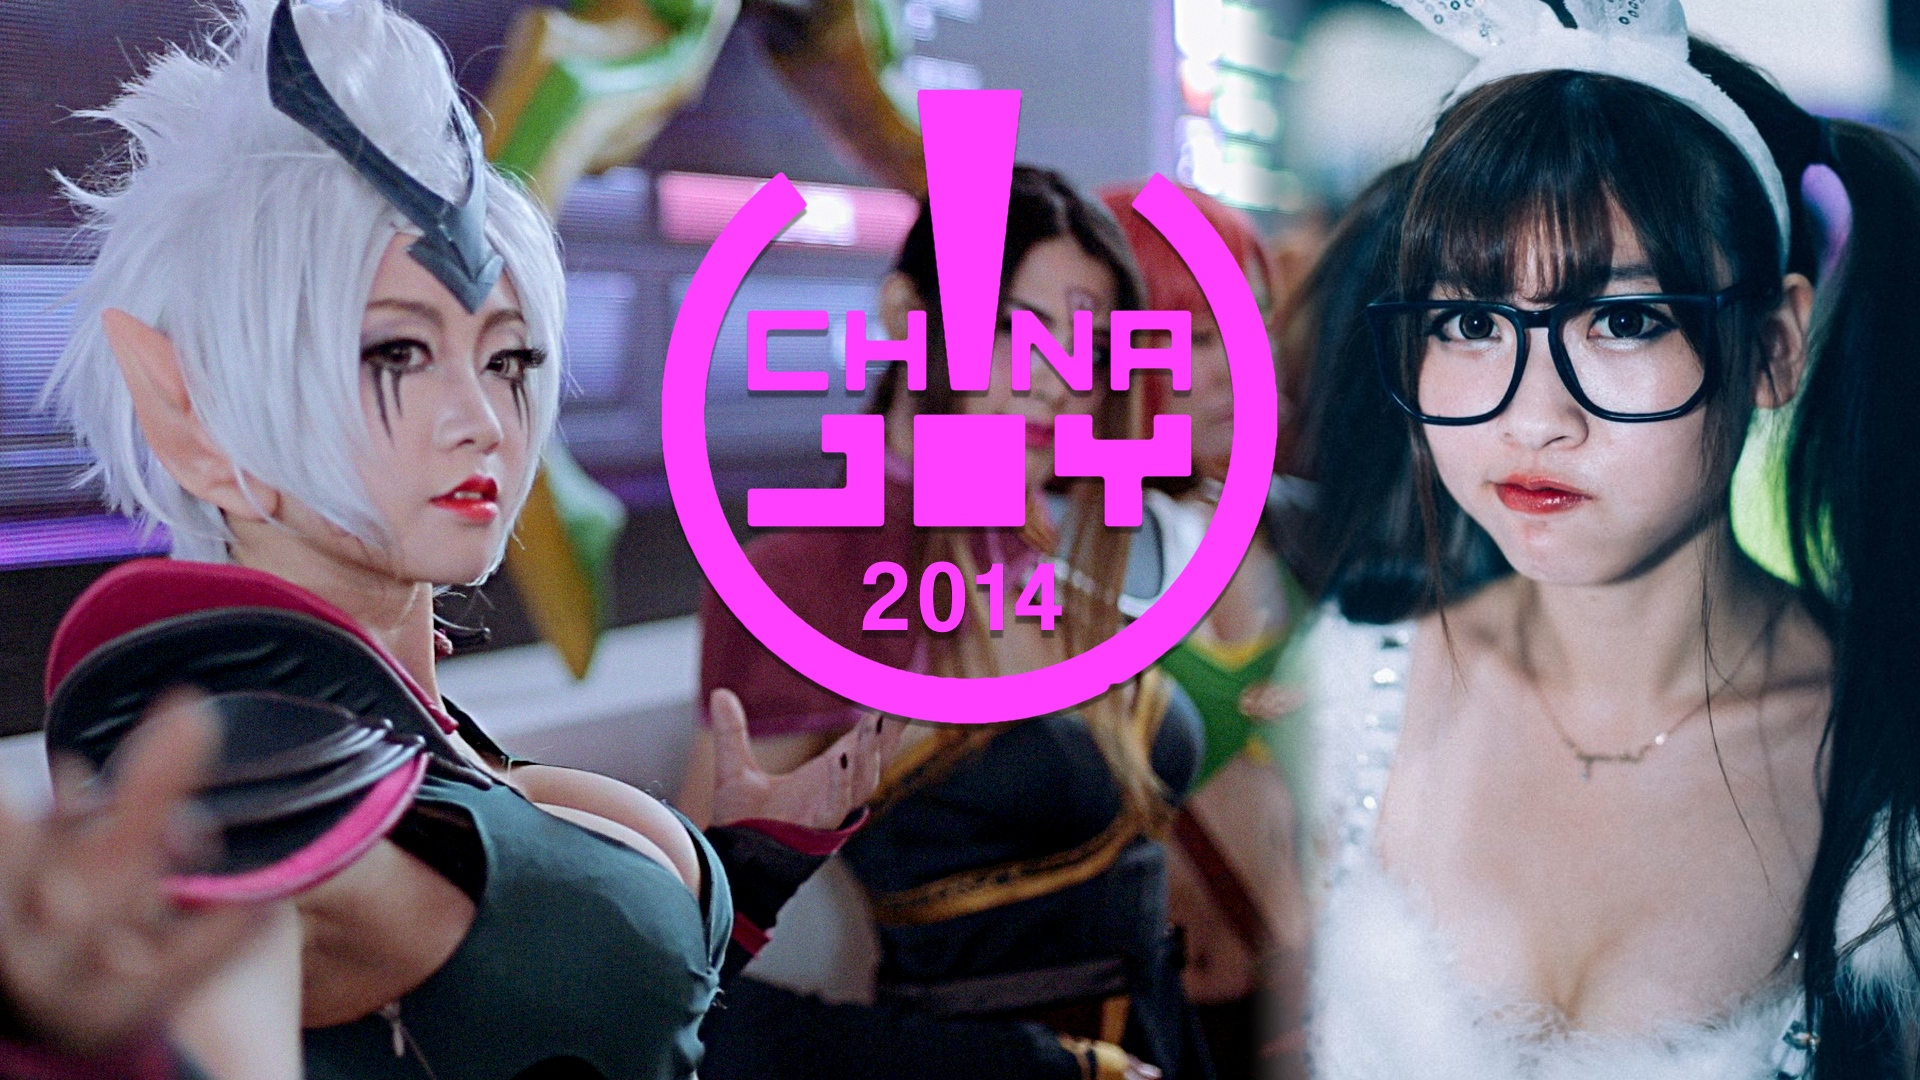 WATCH: Best bits of this year's ChinaJoy gaming expo